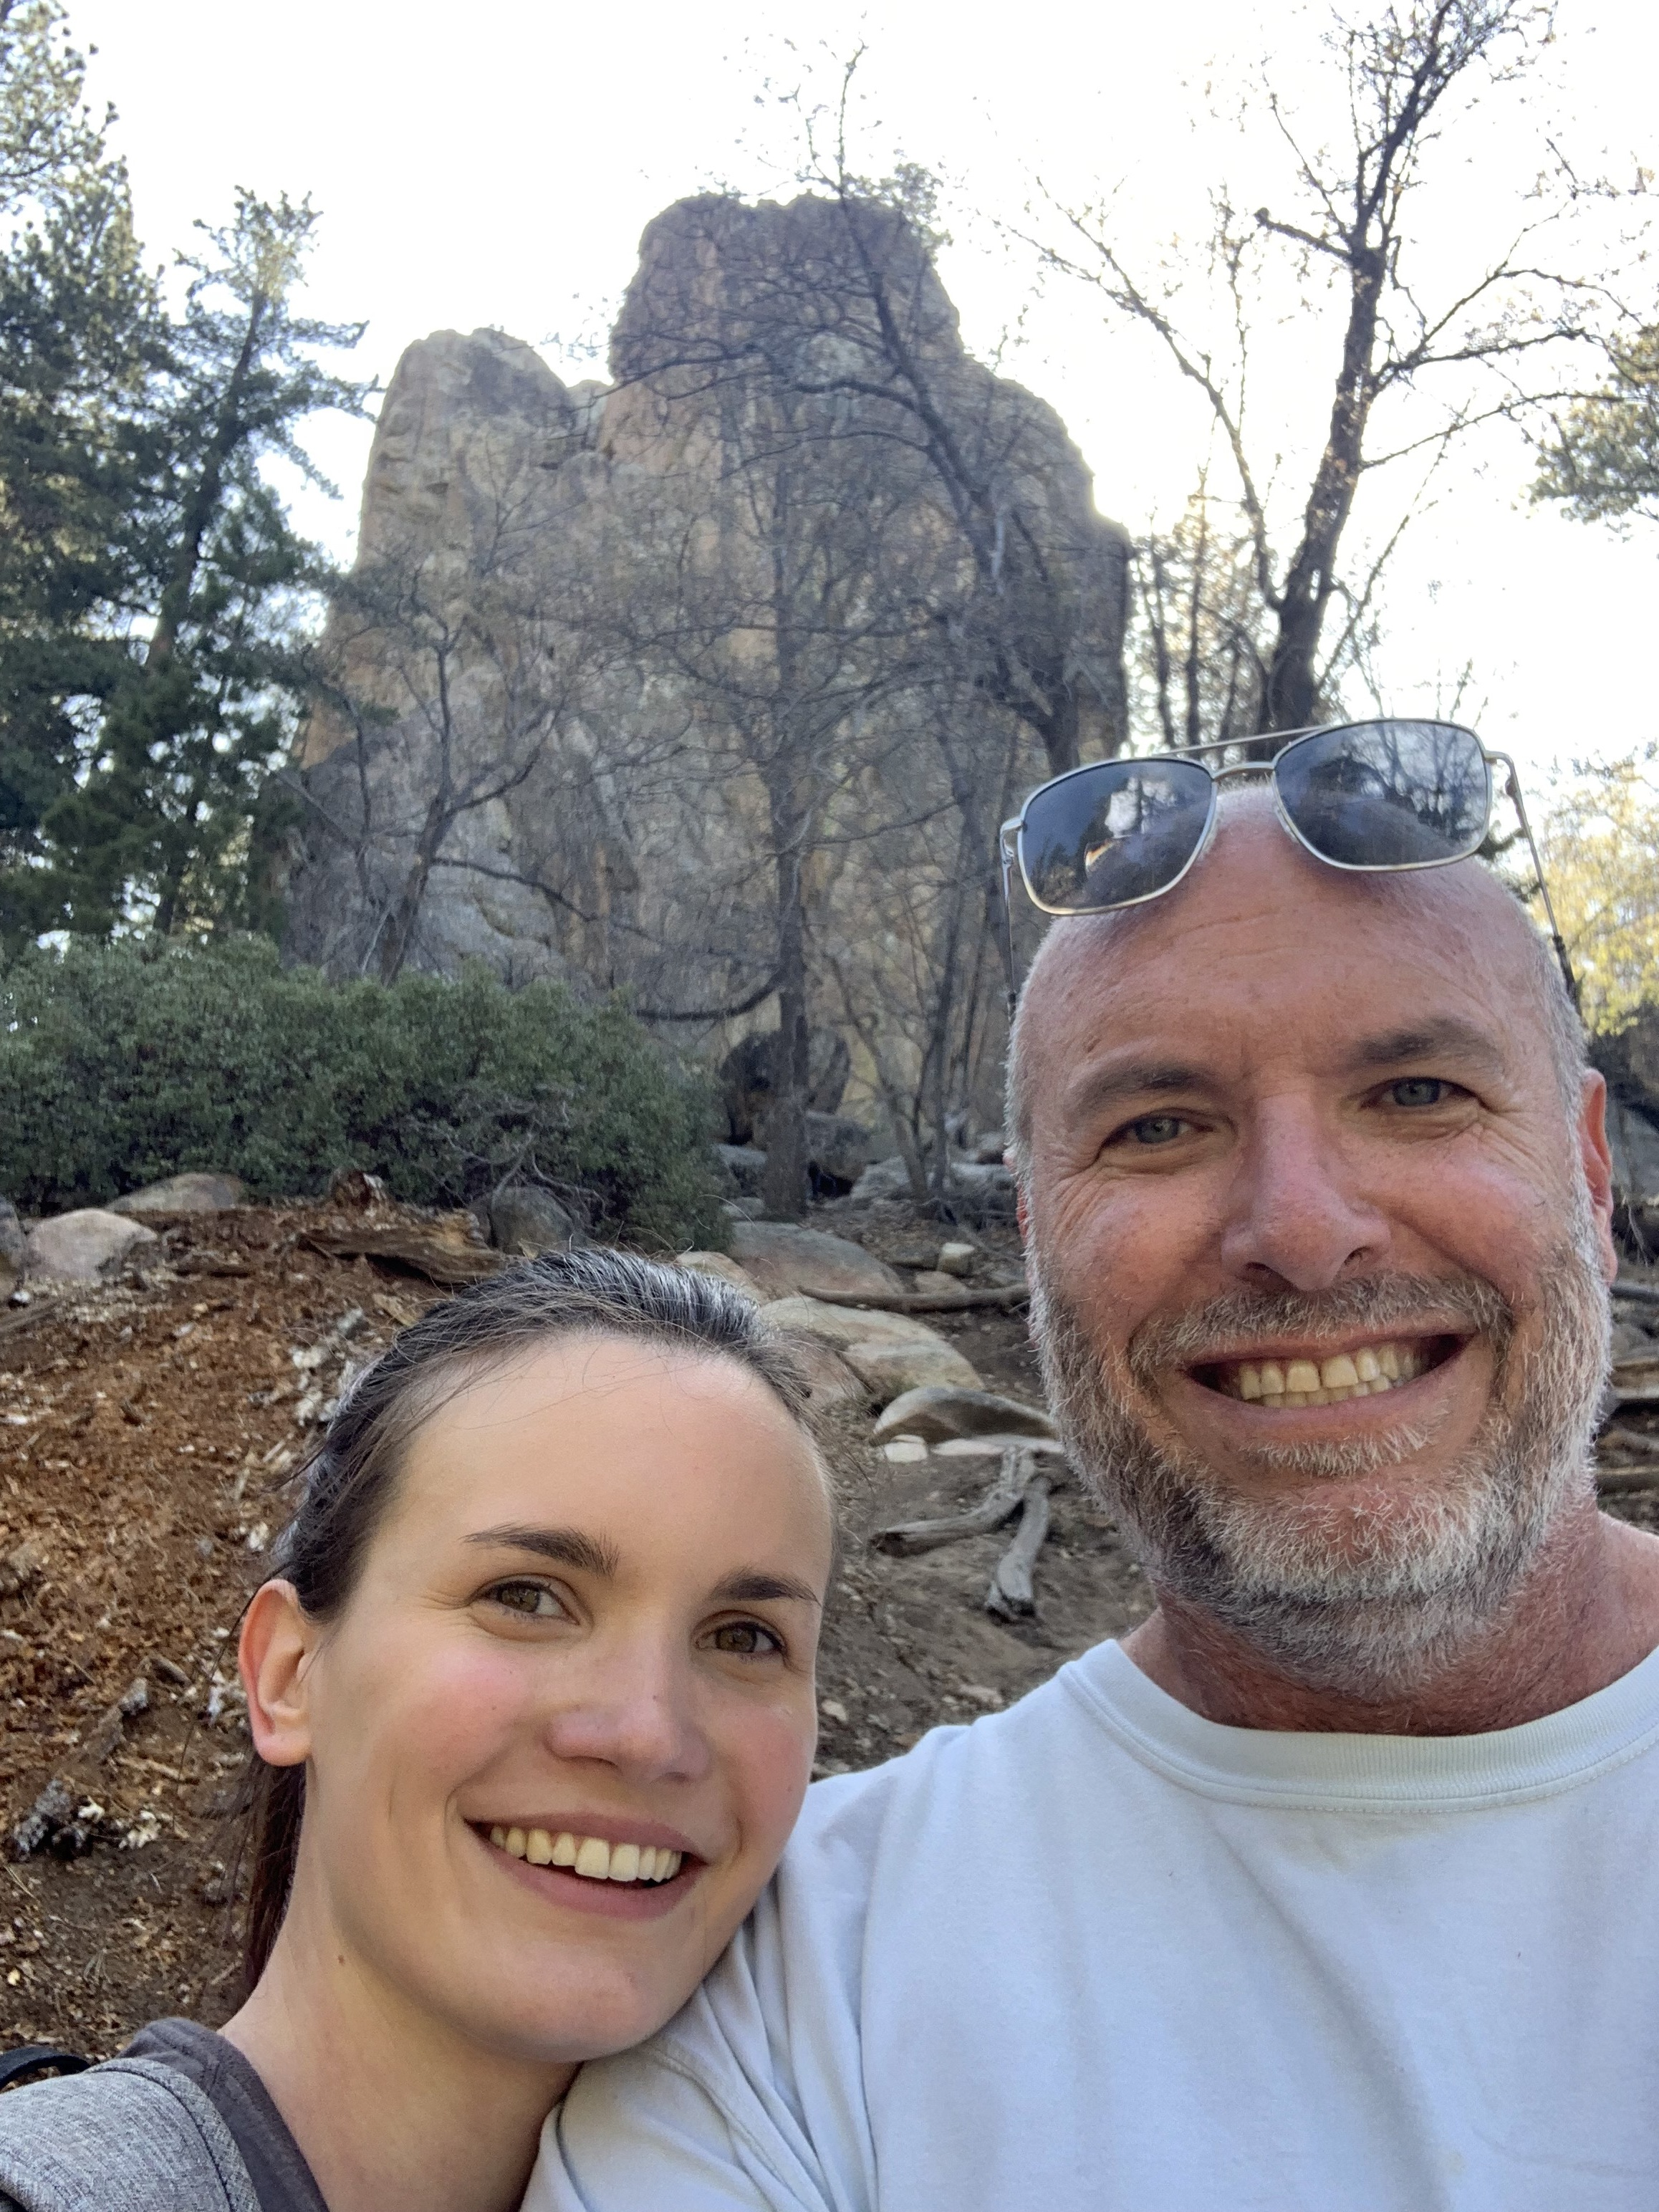 This is me and my daughter Carly making our ascent toward Castle Rock (in the background) above Big Bear Lake California. As we hiked, bouldered and climbed, I had 5 powerful things illustrated to me as a Connector in a local church. Scroll down this photo journal to see what I learned.